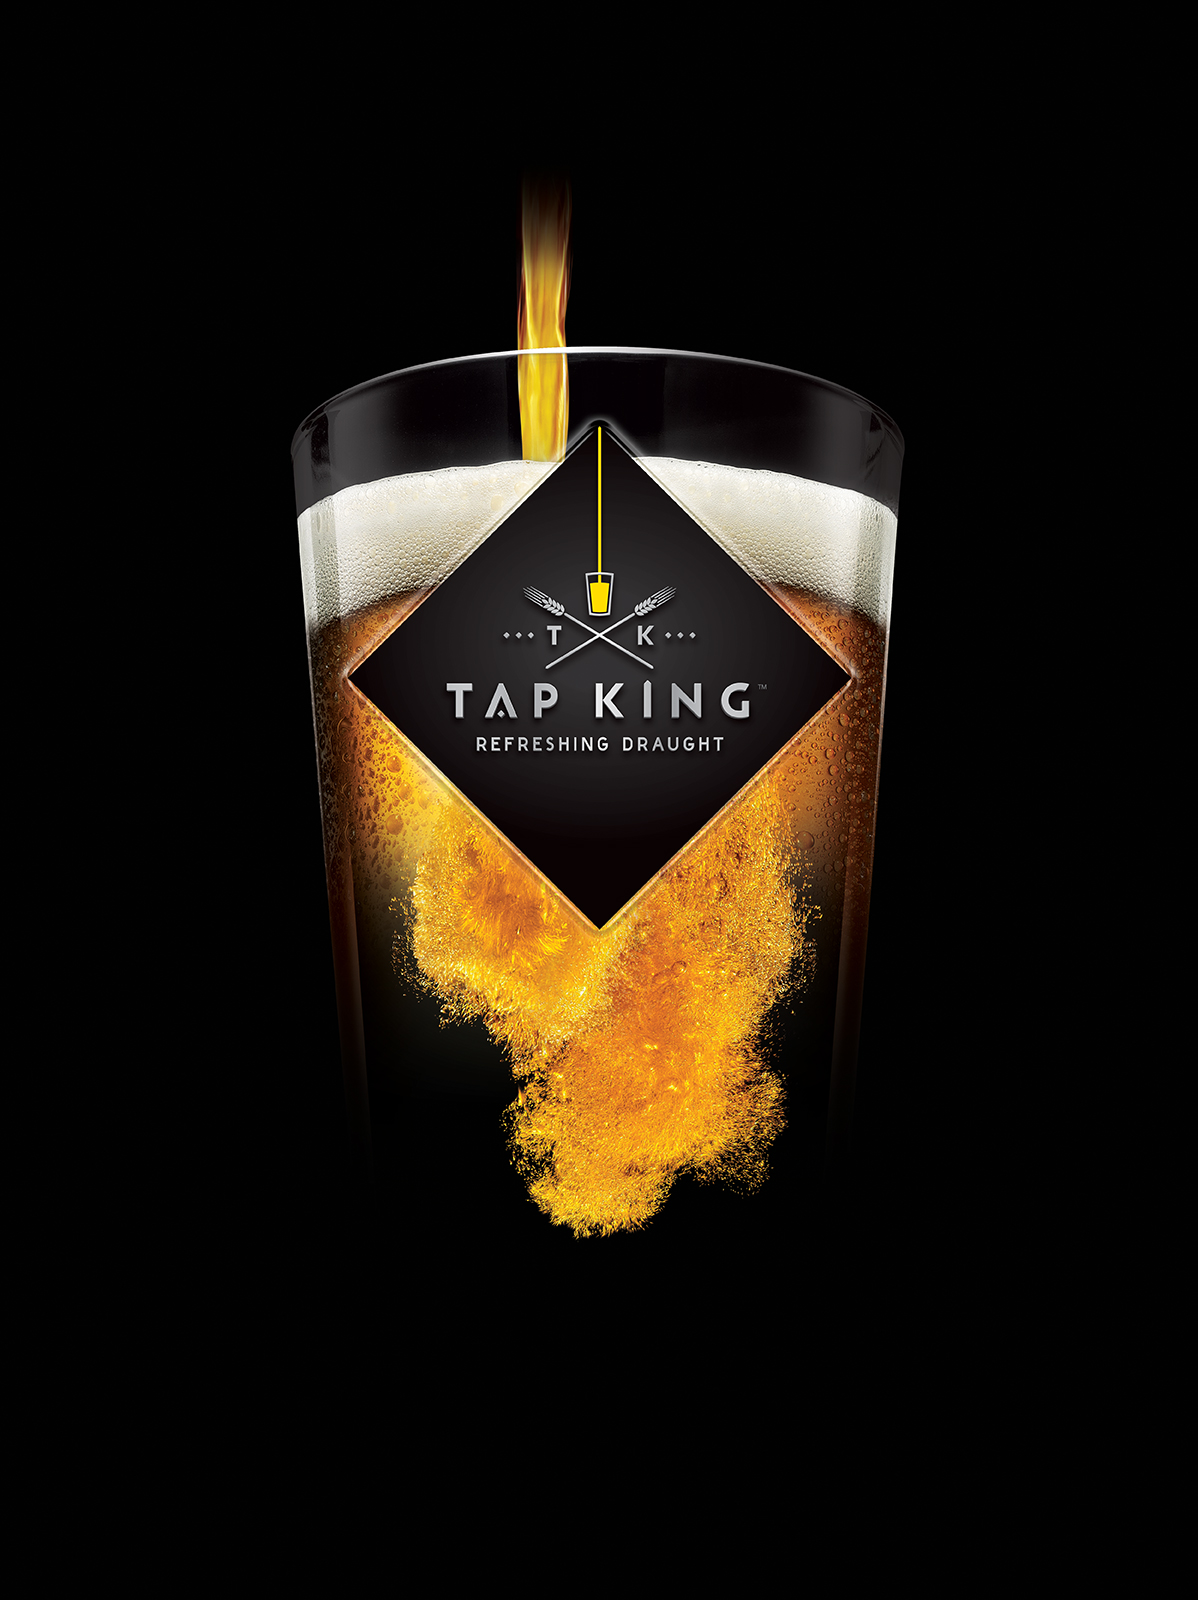 Energi Packaging Design Agency Specialists Product Photography Label Tap King Beer Draught Refreshing Glass Pour